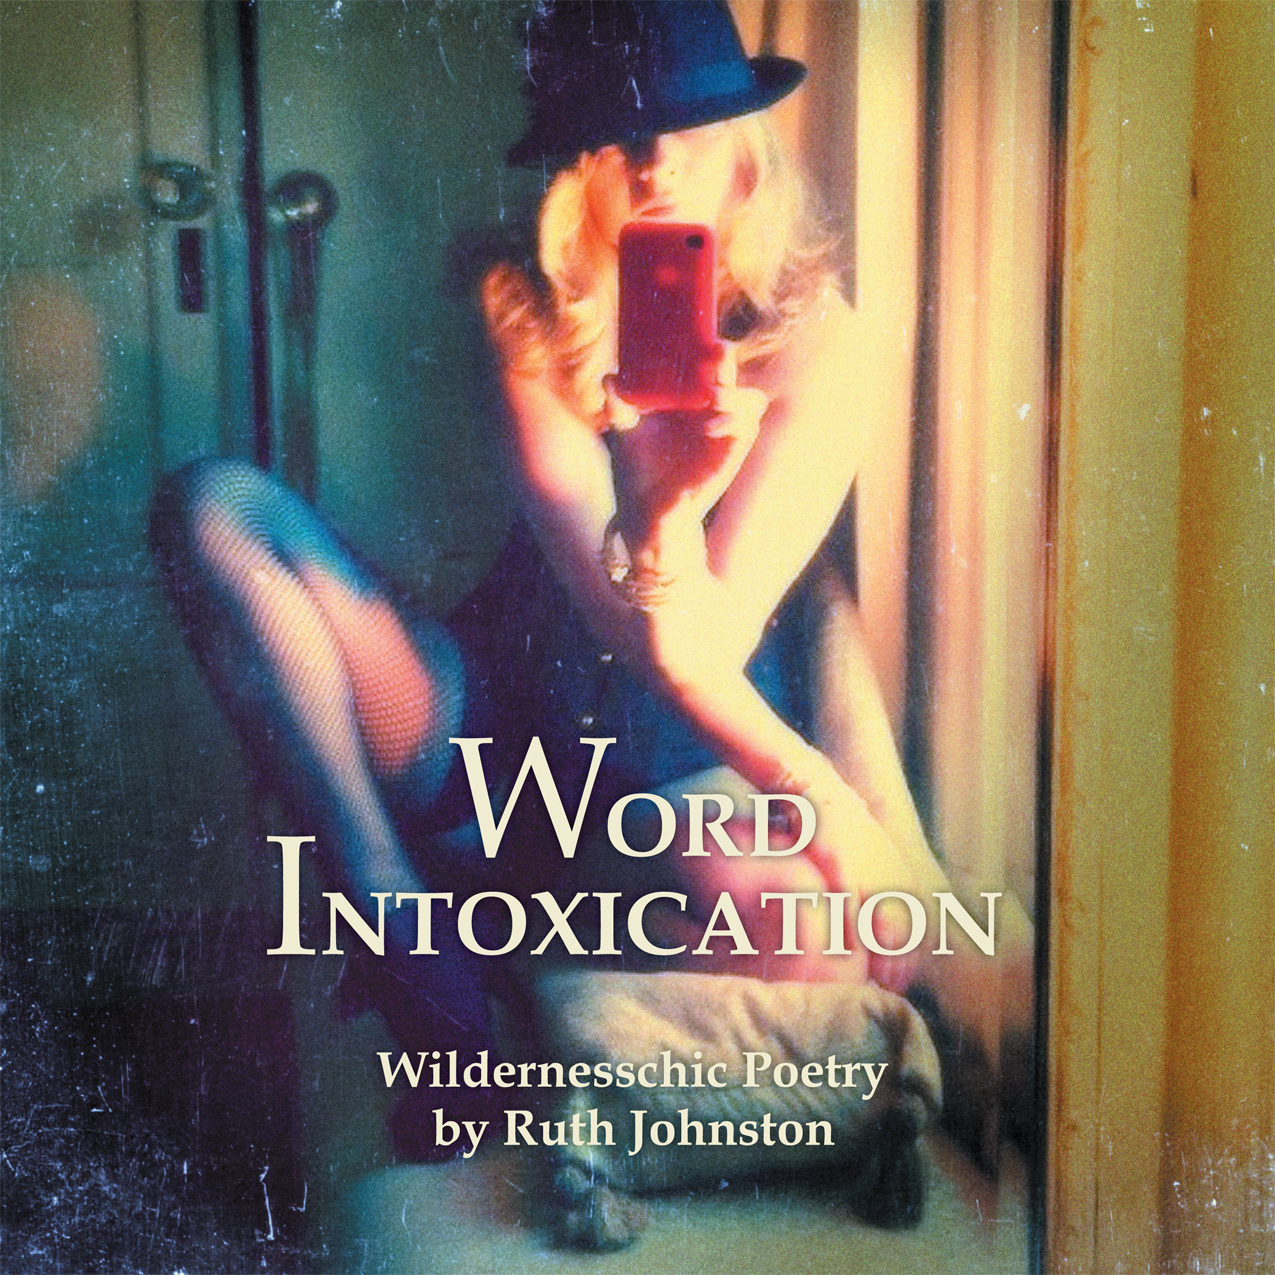 Word Intoxication